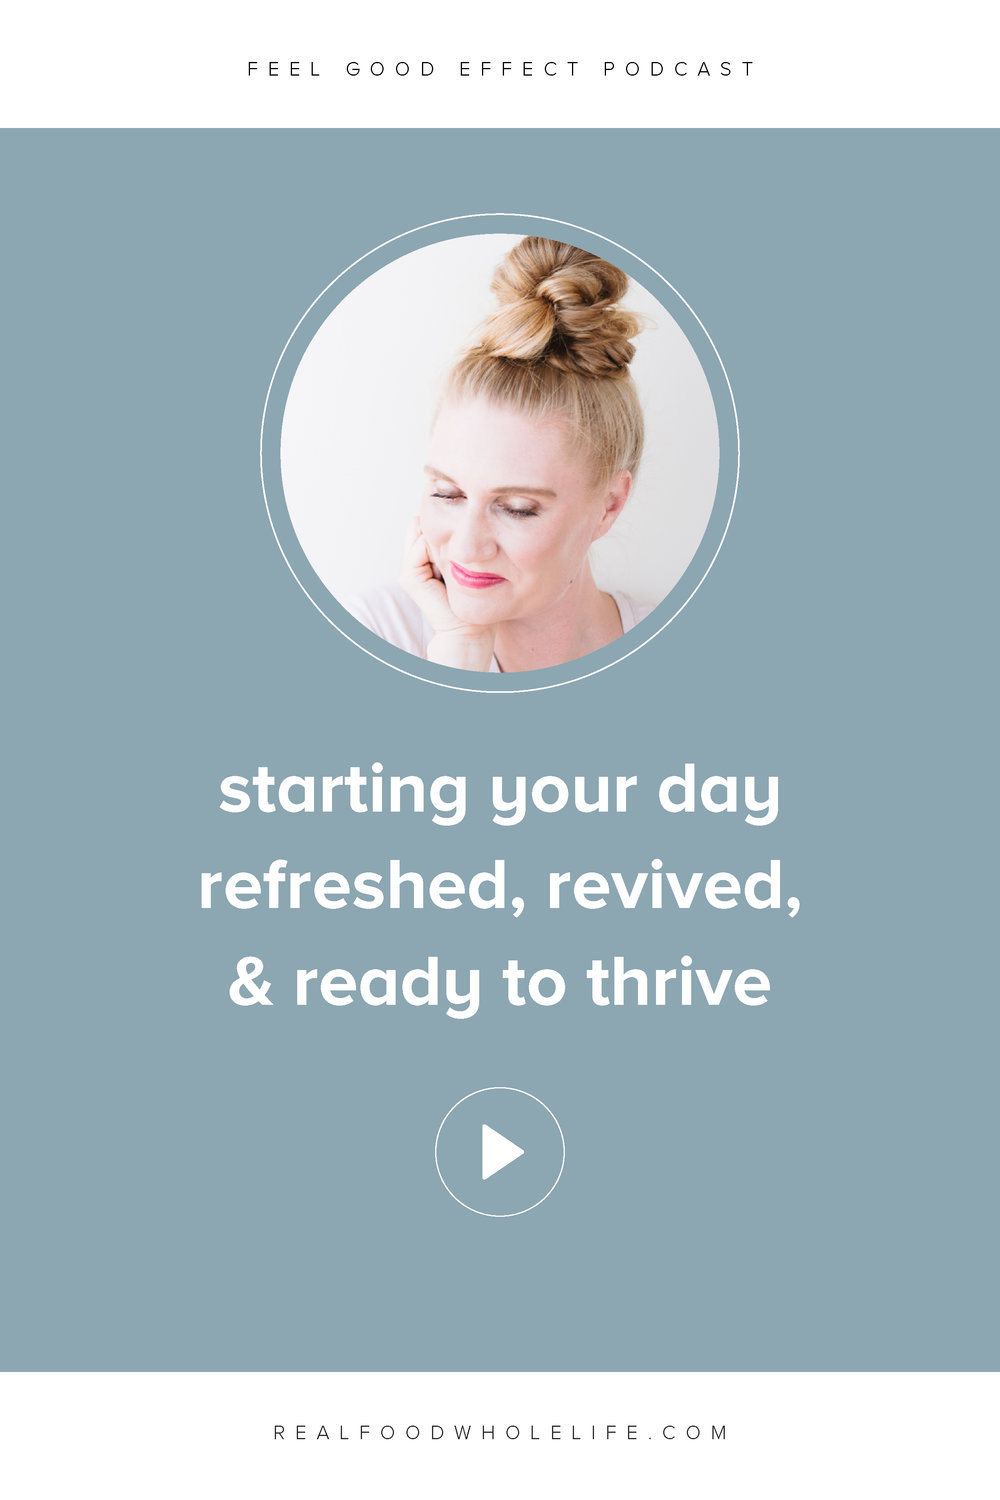 Listen to this episode of the Feel Good Effect podcast about starting your day refreshed, revived, and ready to thrive. Learn about how to implement a 5 Minute Morning and how it might help you. #feelgoodeffect #podcast #wellness #morning #simplifiedmorning #simplifiedselfcare #selfcare